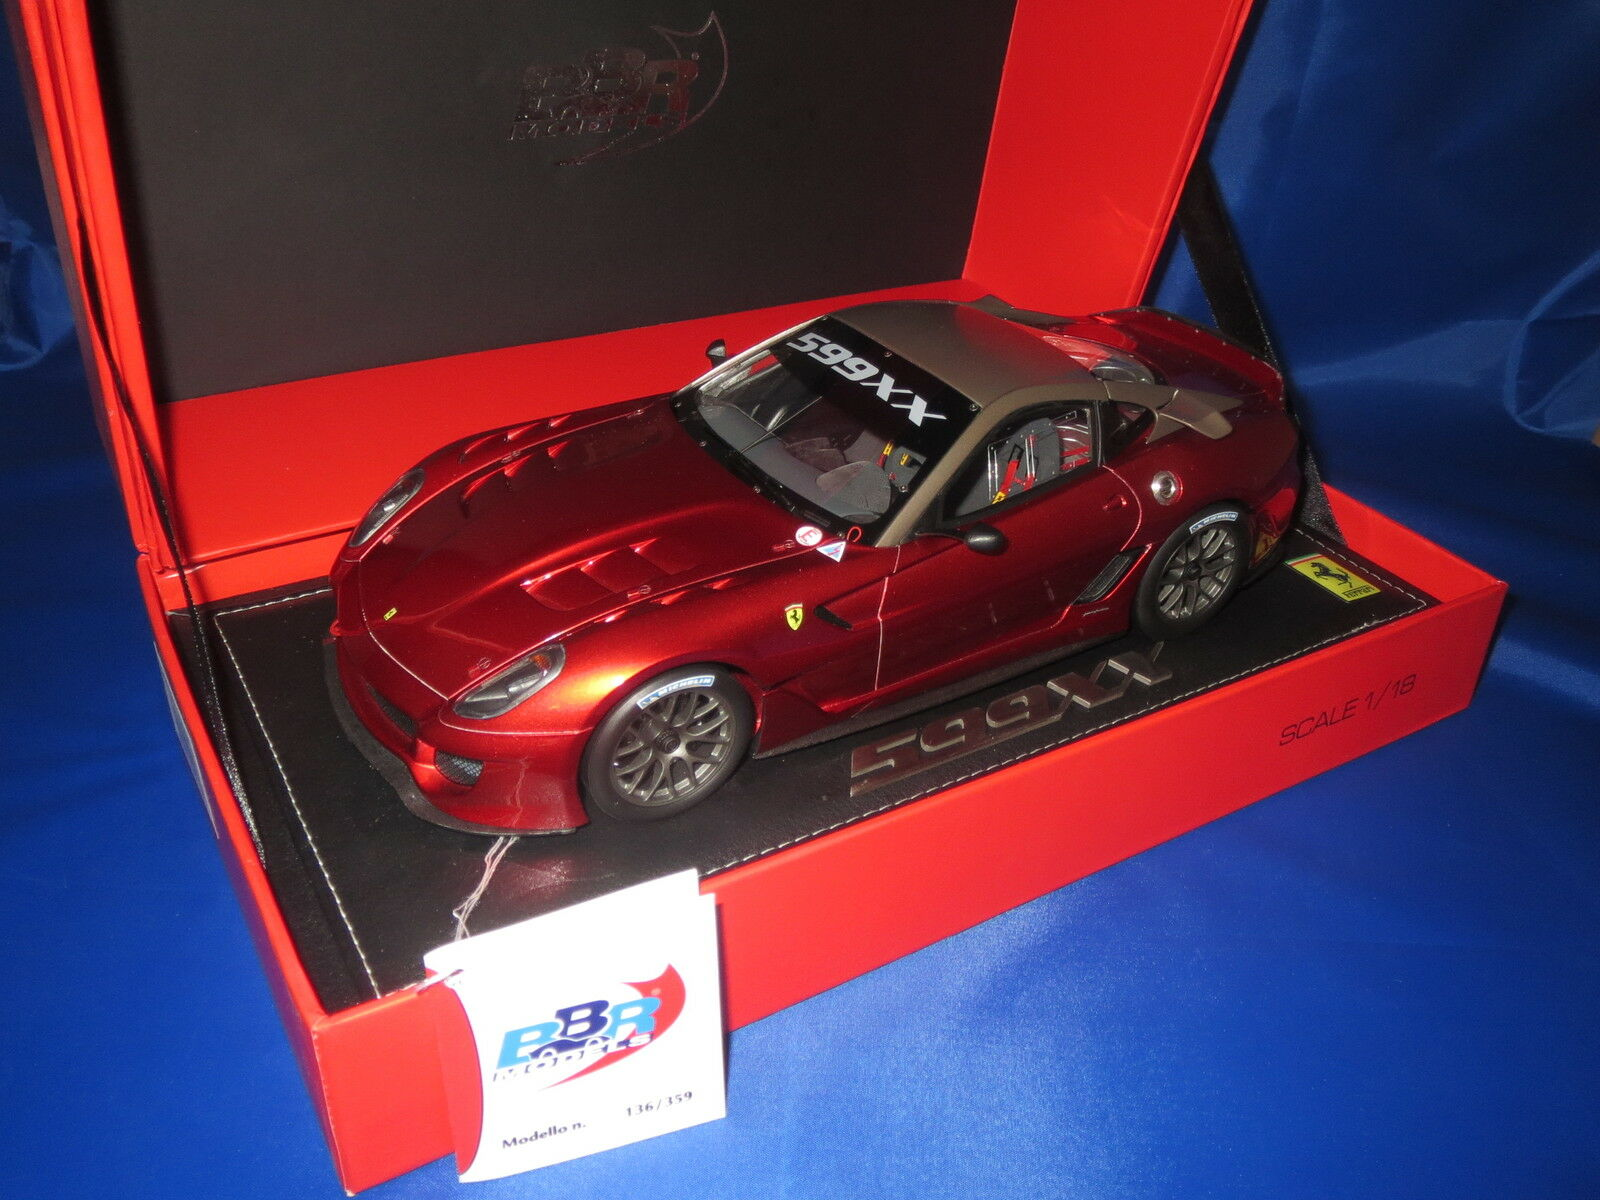 BBR p1815 Ferrari 559xx race version 2009 en 1 18 - BERLINE 359 pc, rare